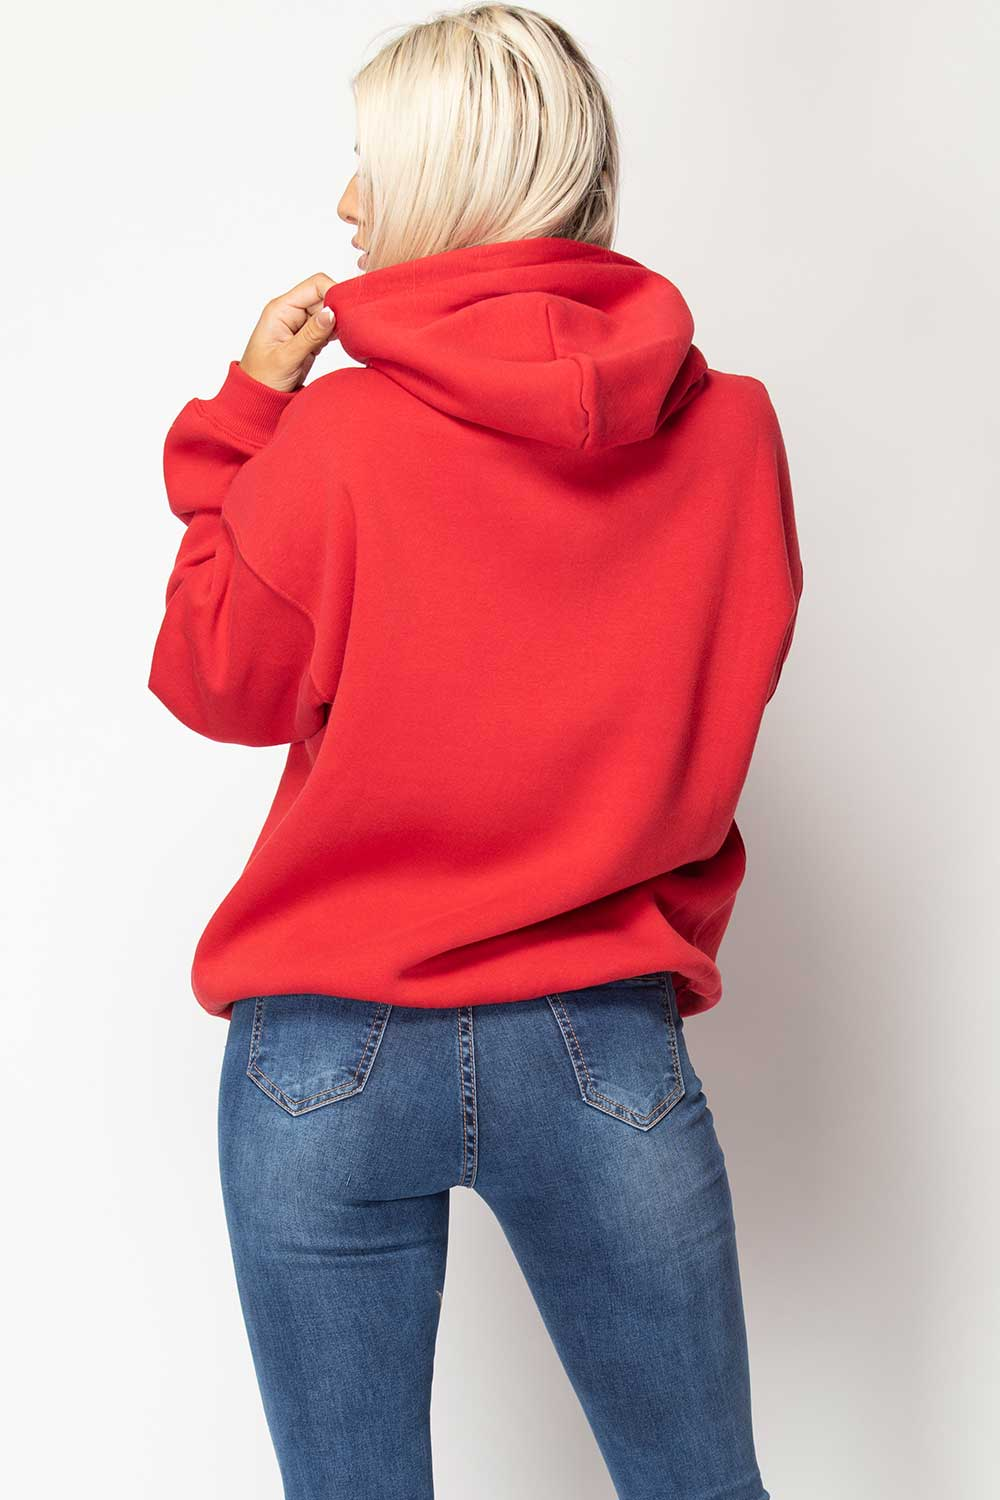 womens oversized red hoodie